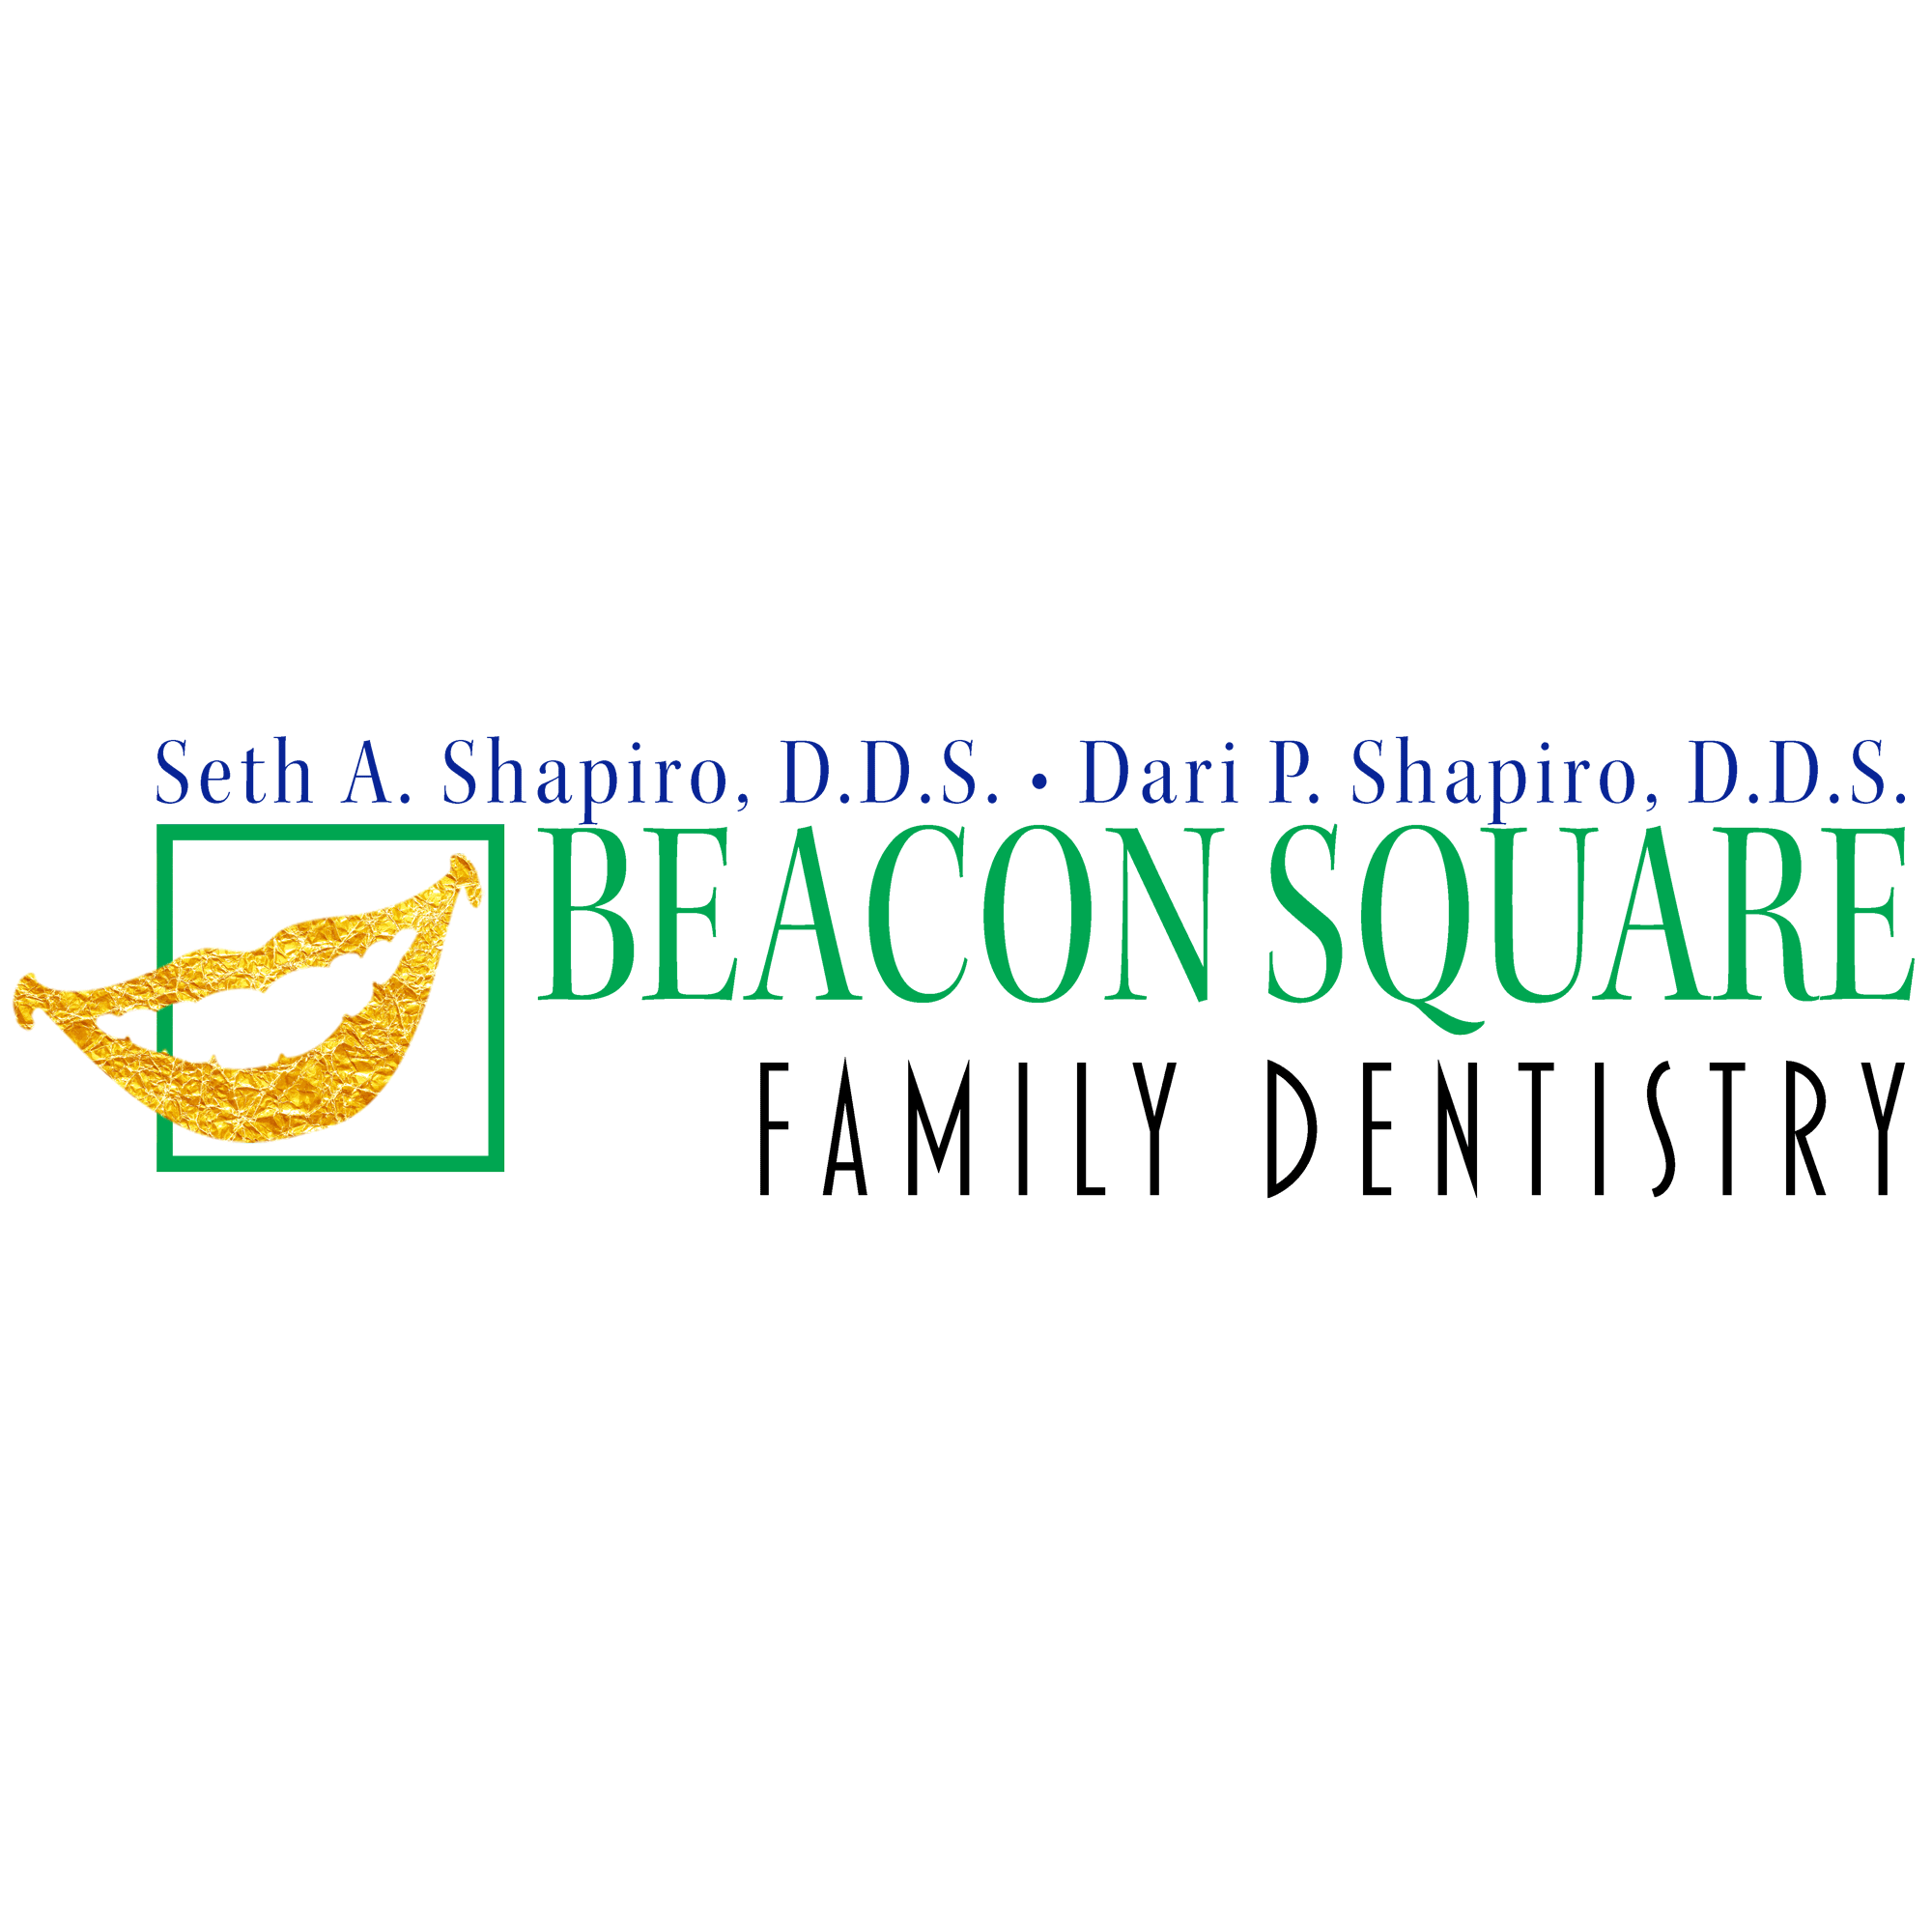 beacon square family dentistry